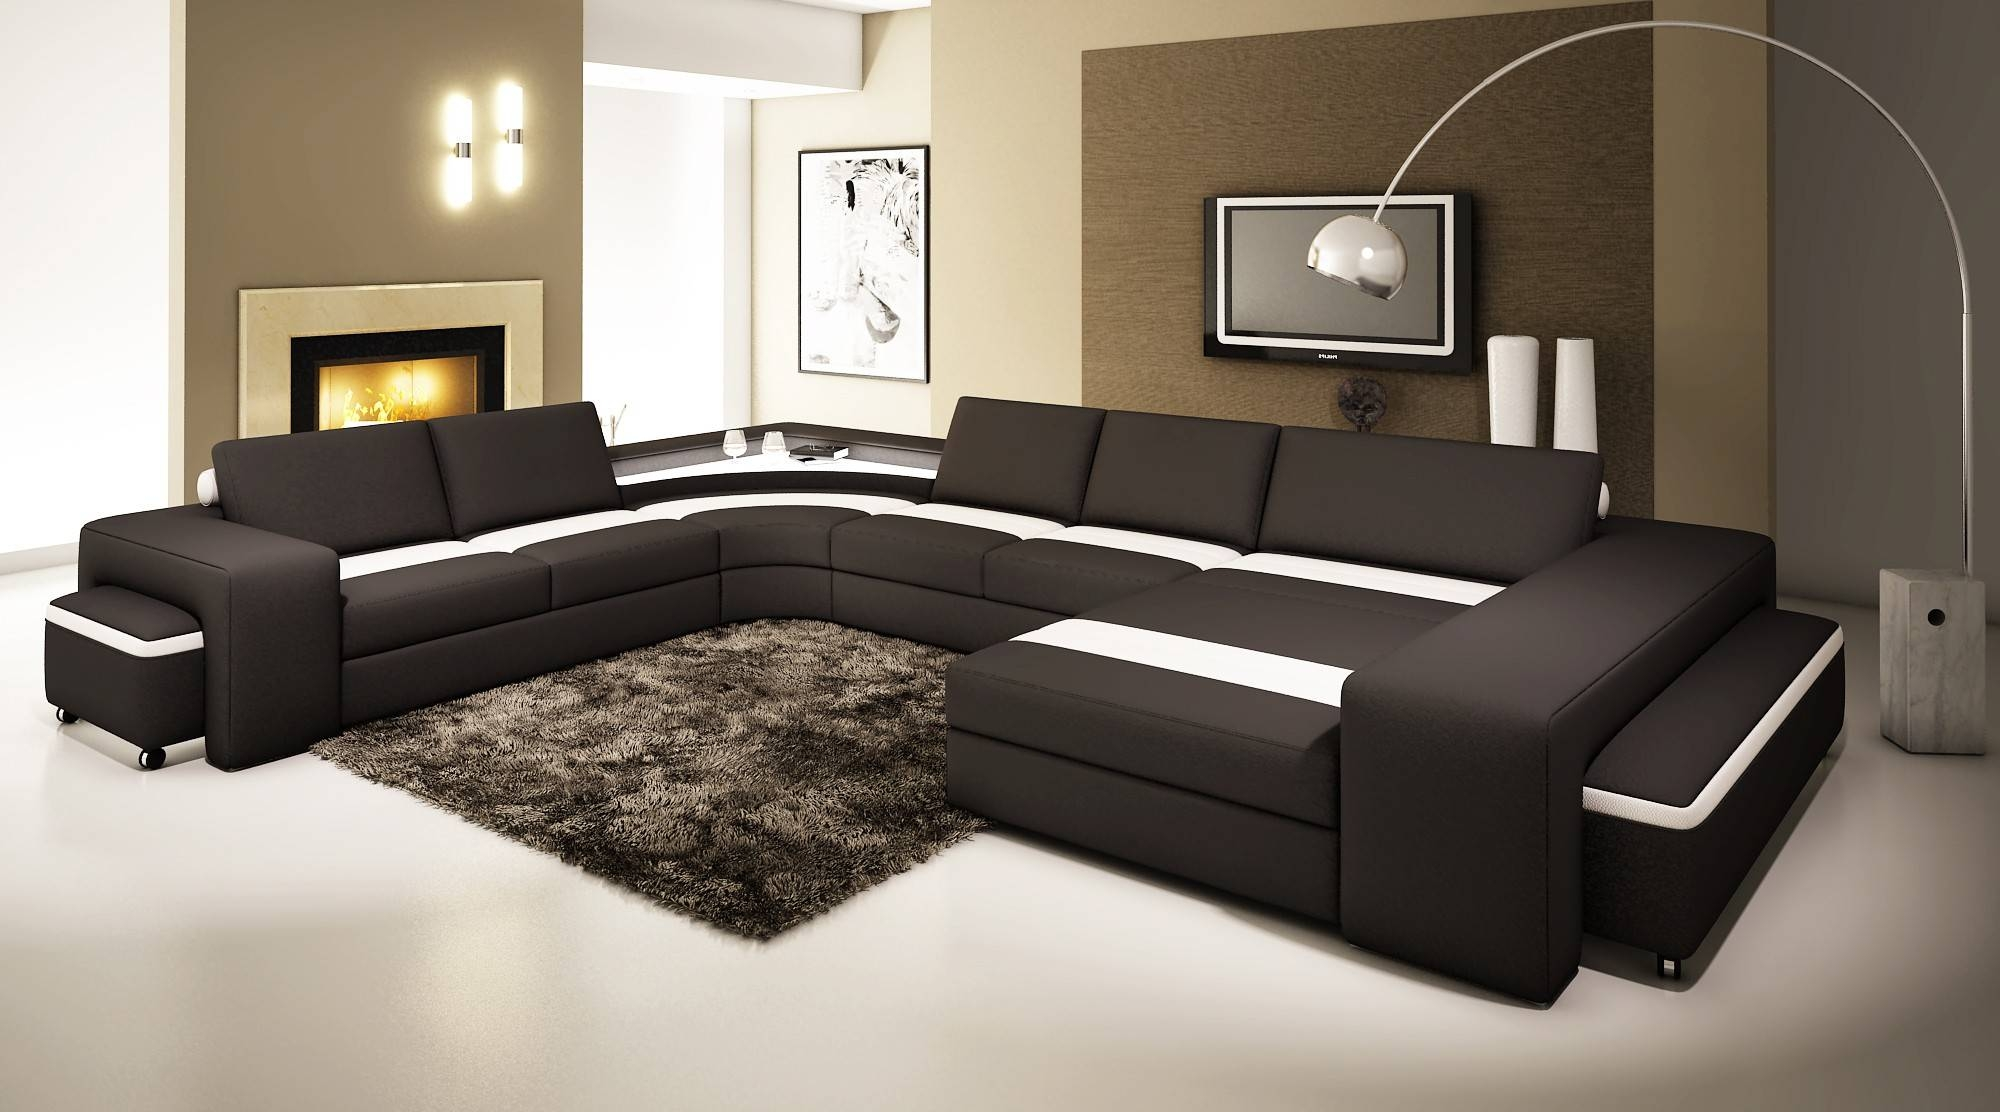 Leather Corner Sofa Uk | Tehranmix Decoration within Corner Sofa Bed Sale (Image 15 of 30)